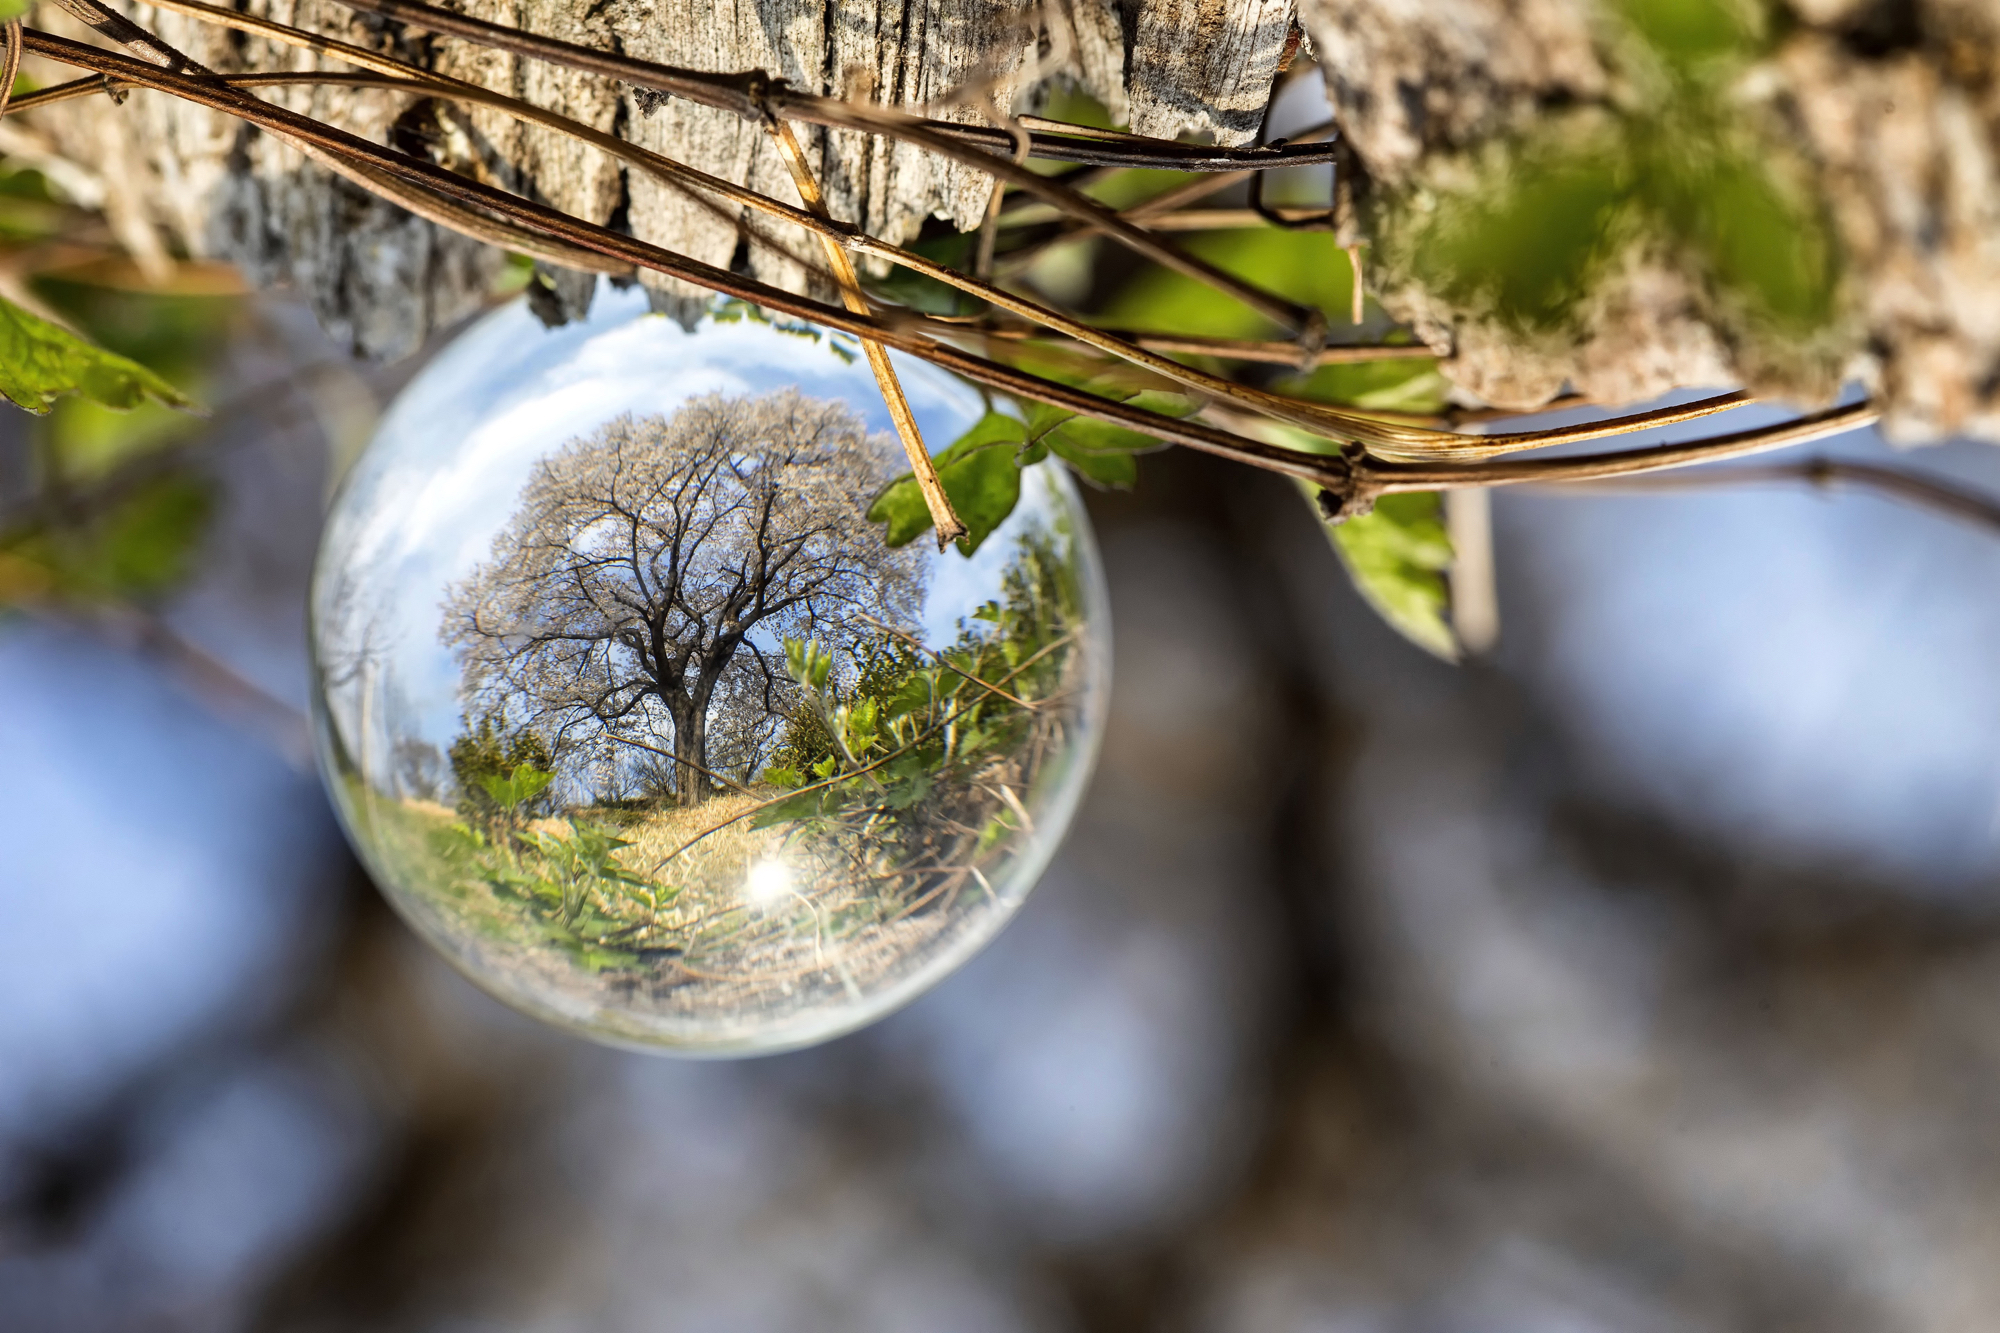 Image: This shows a standard lensball perspective. It shows the tree as the main subject in the ball...